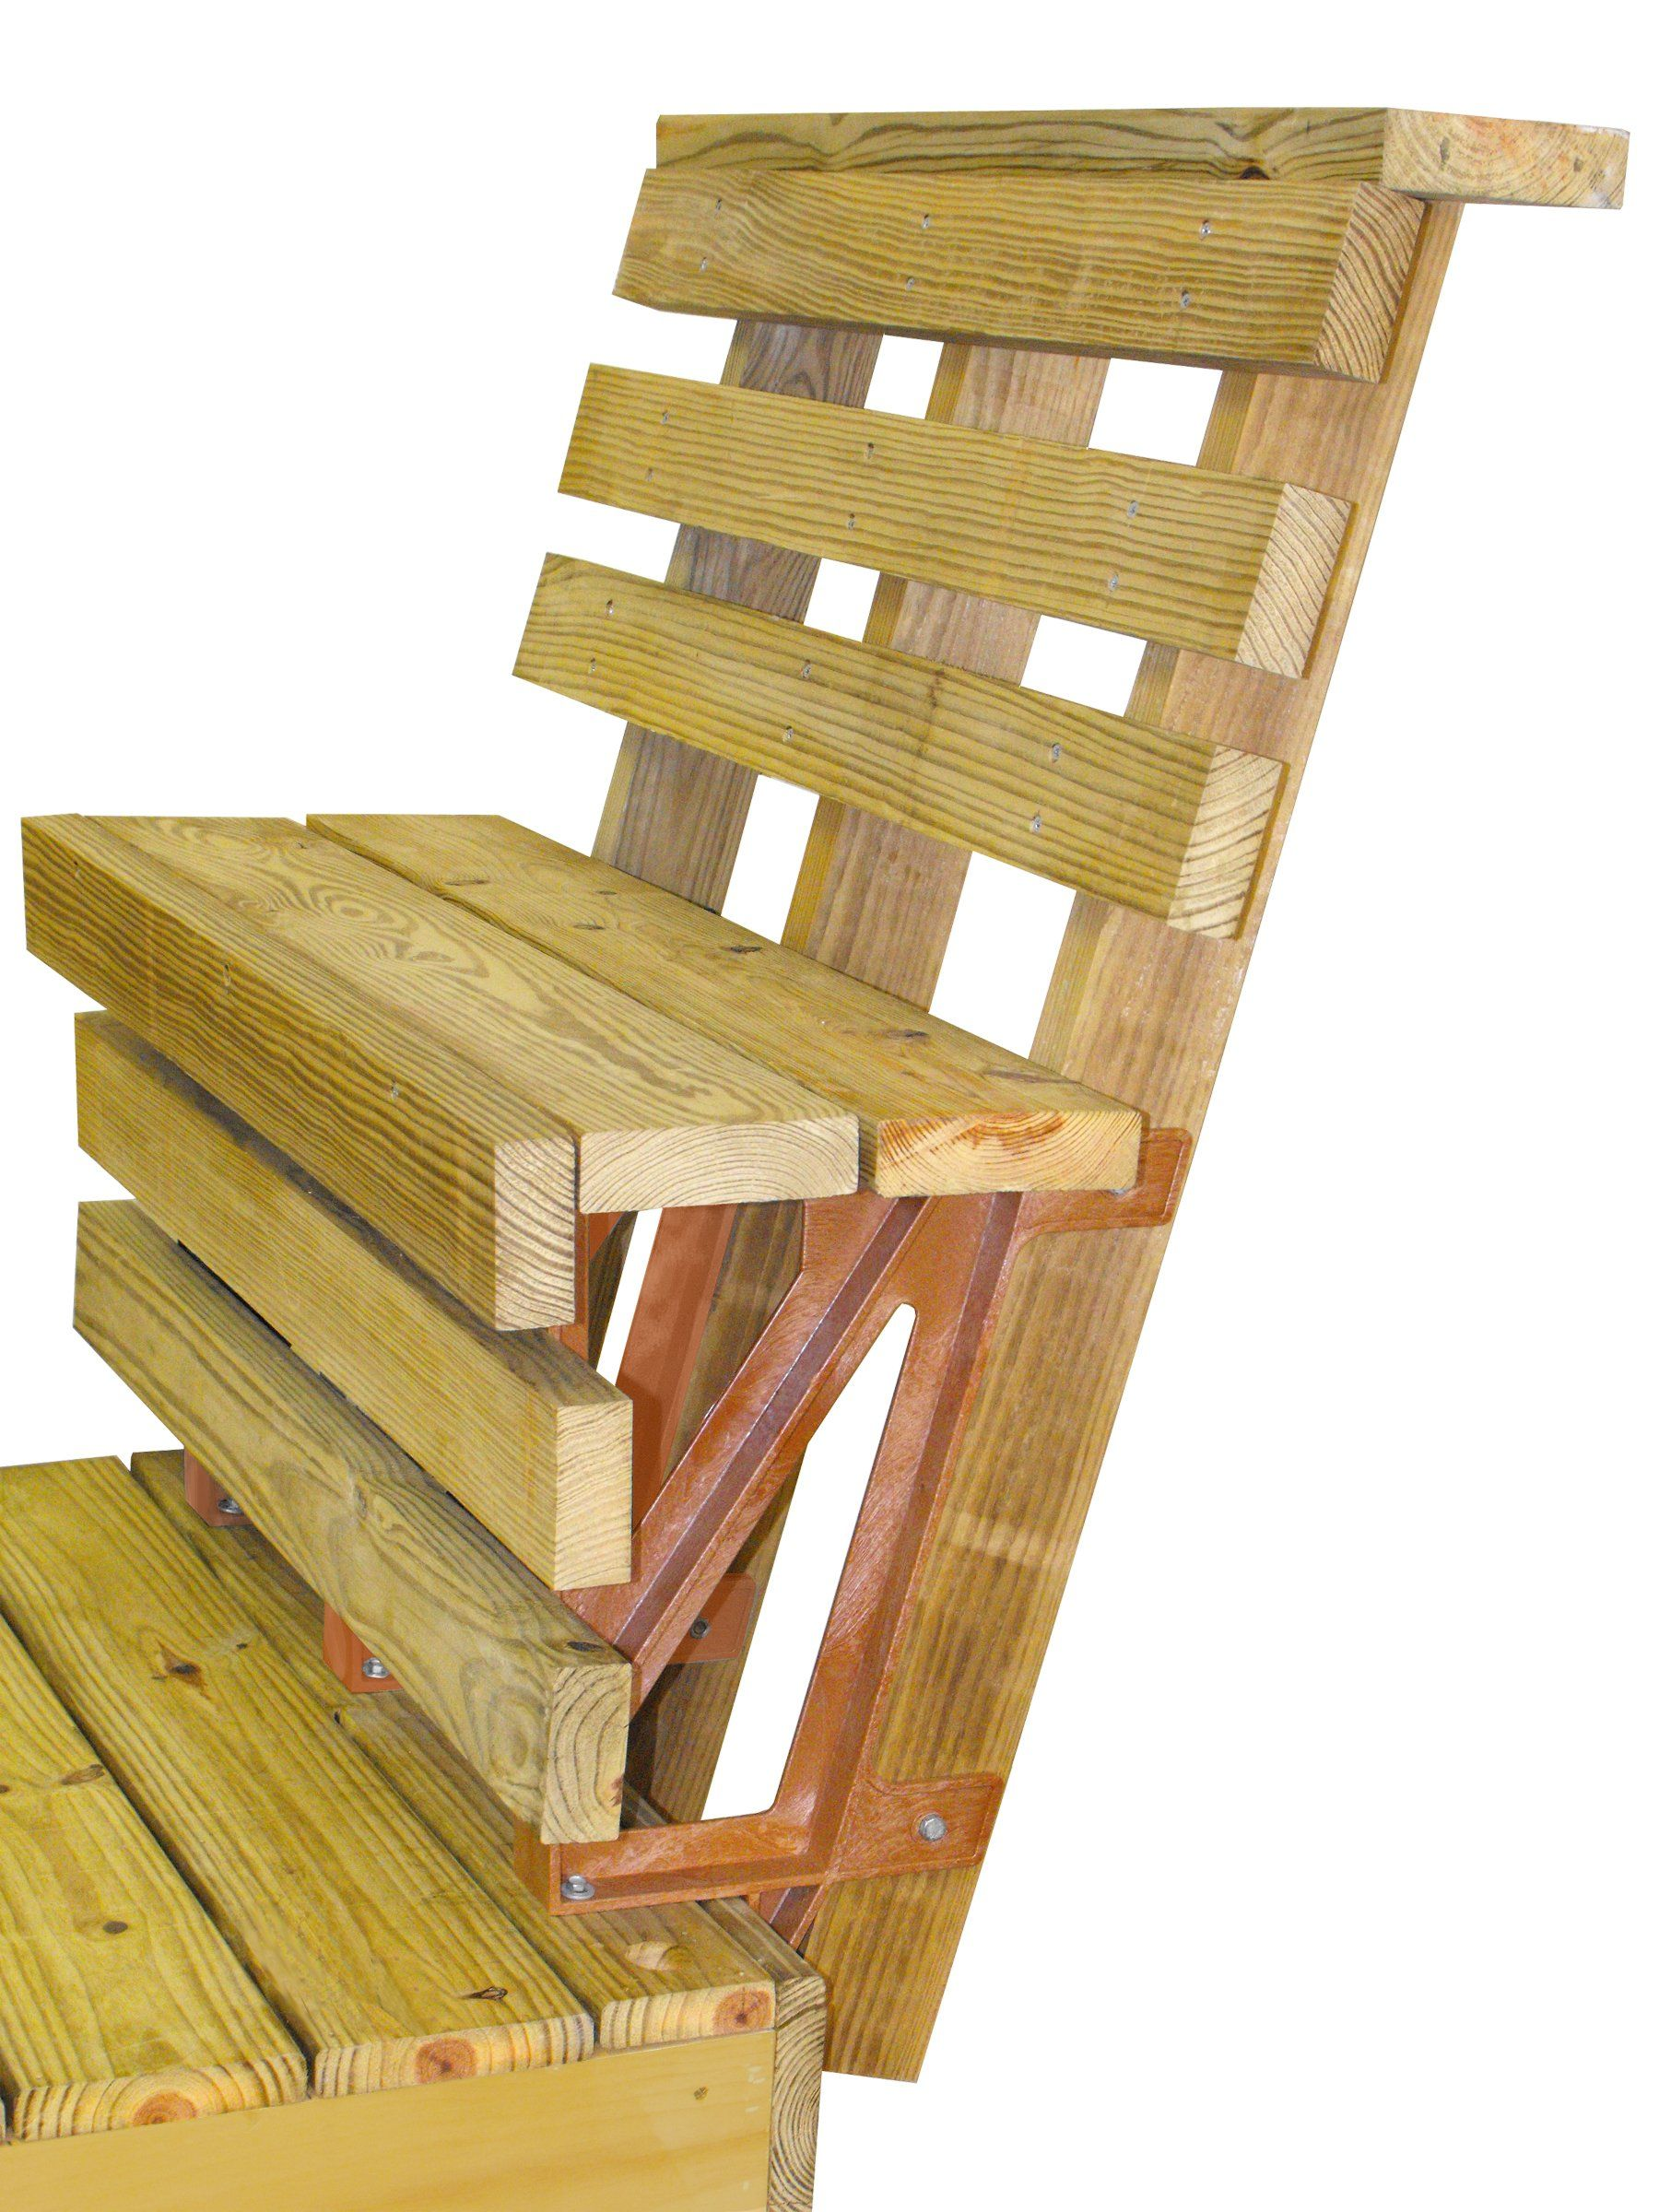 Excellent 2X4Basics 90176 Dekmate Bench Bracket Redwood 2 Pack Caraccident5 Cool Chair Designs And Ideas Caraccident5Info